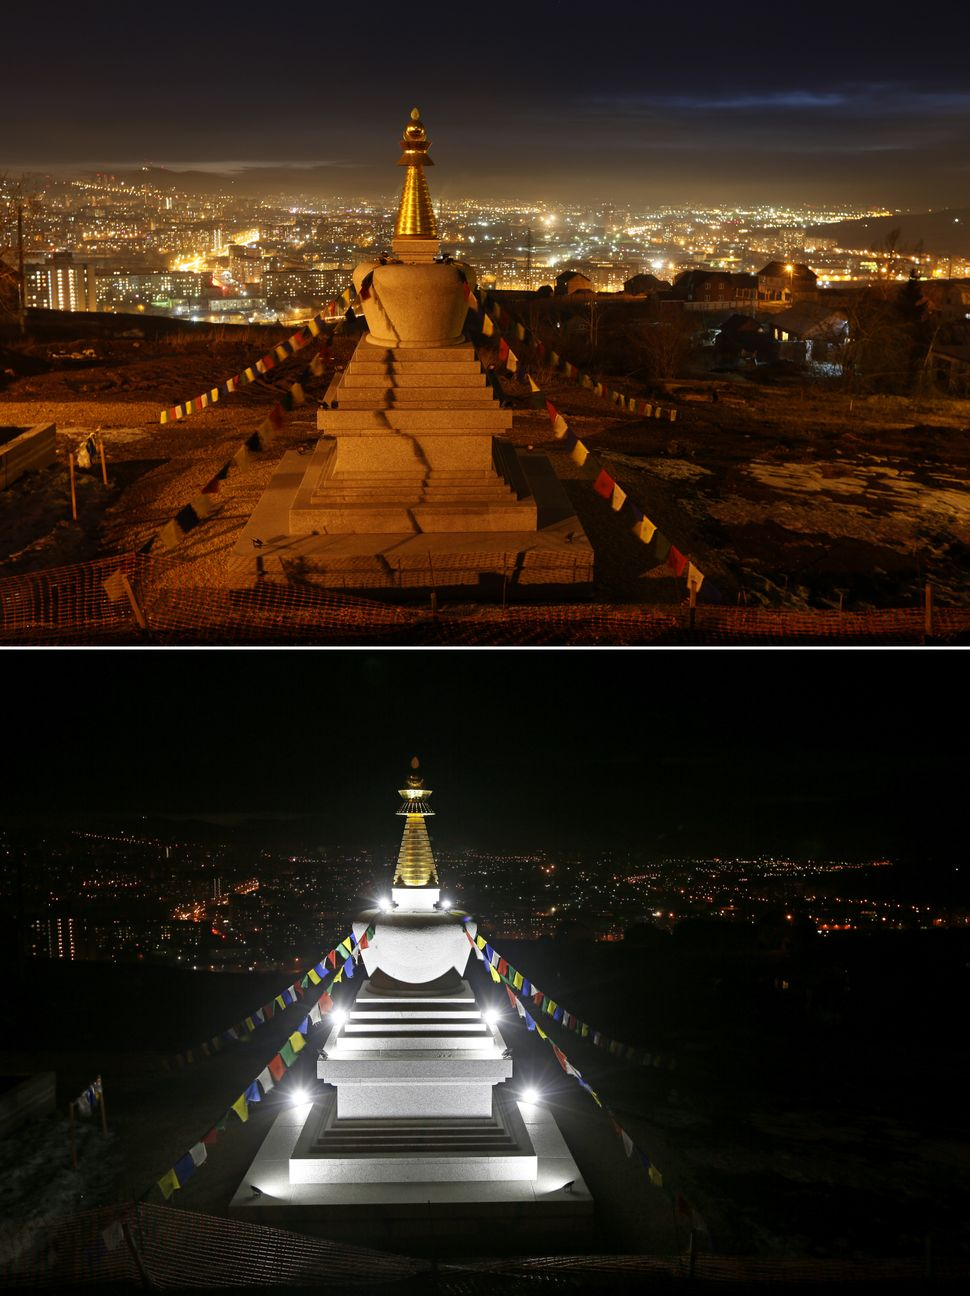 The Stupa of Enlightenment, a holy monument constructed of granite at the Buddhist Center in Krasnoyarsk, during Earth Hour (